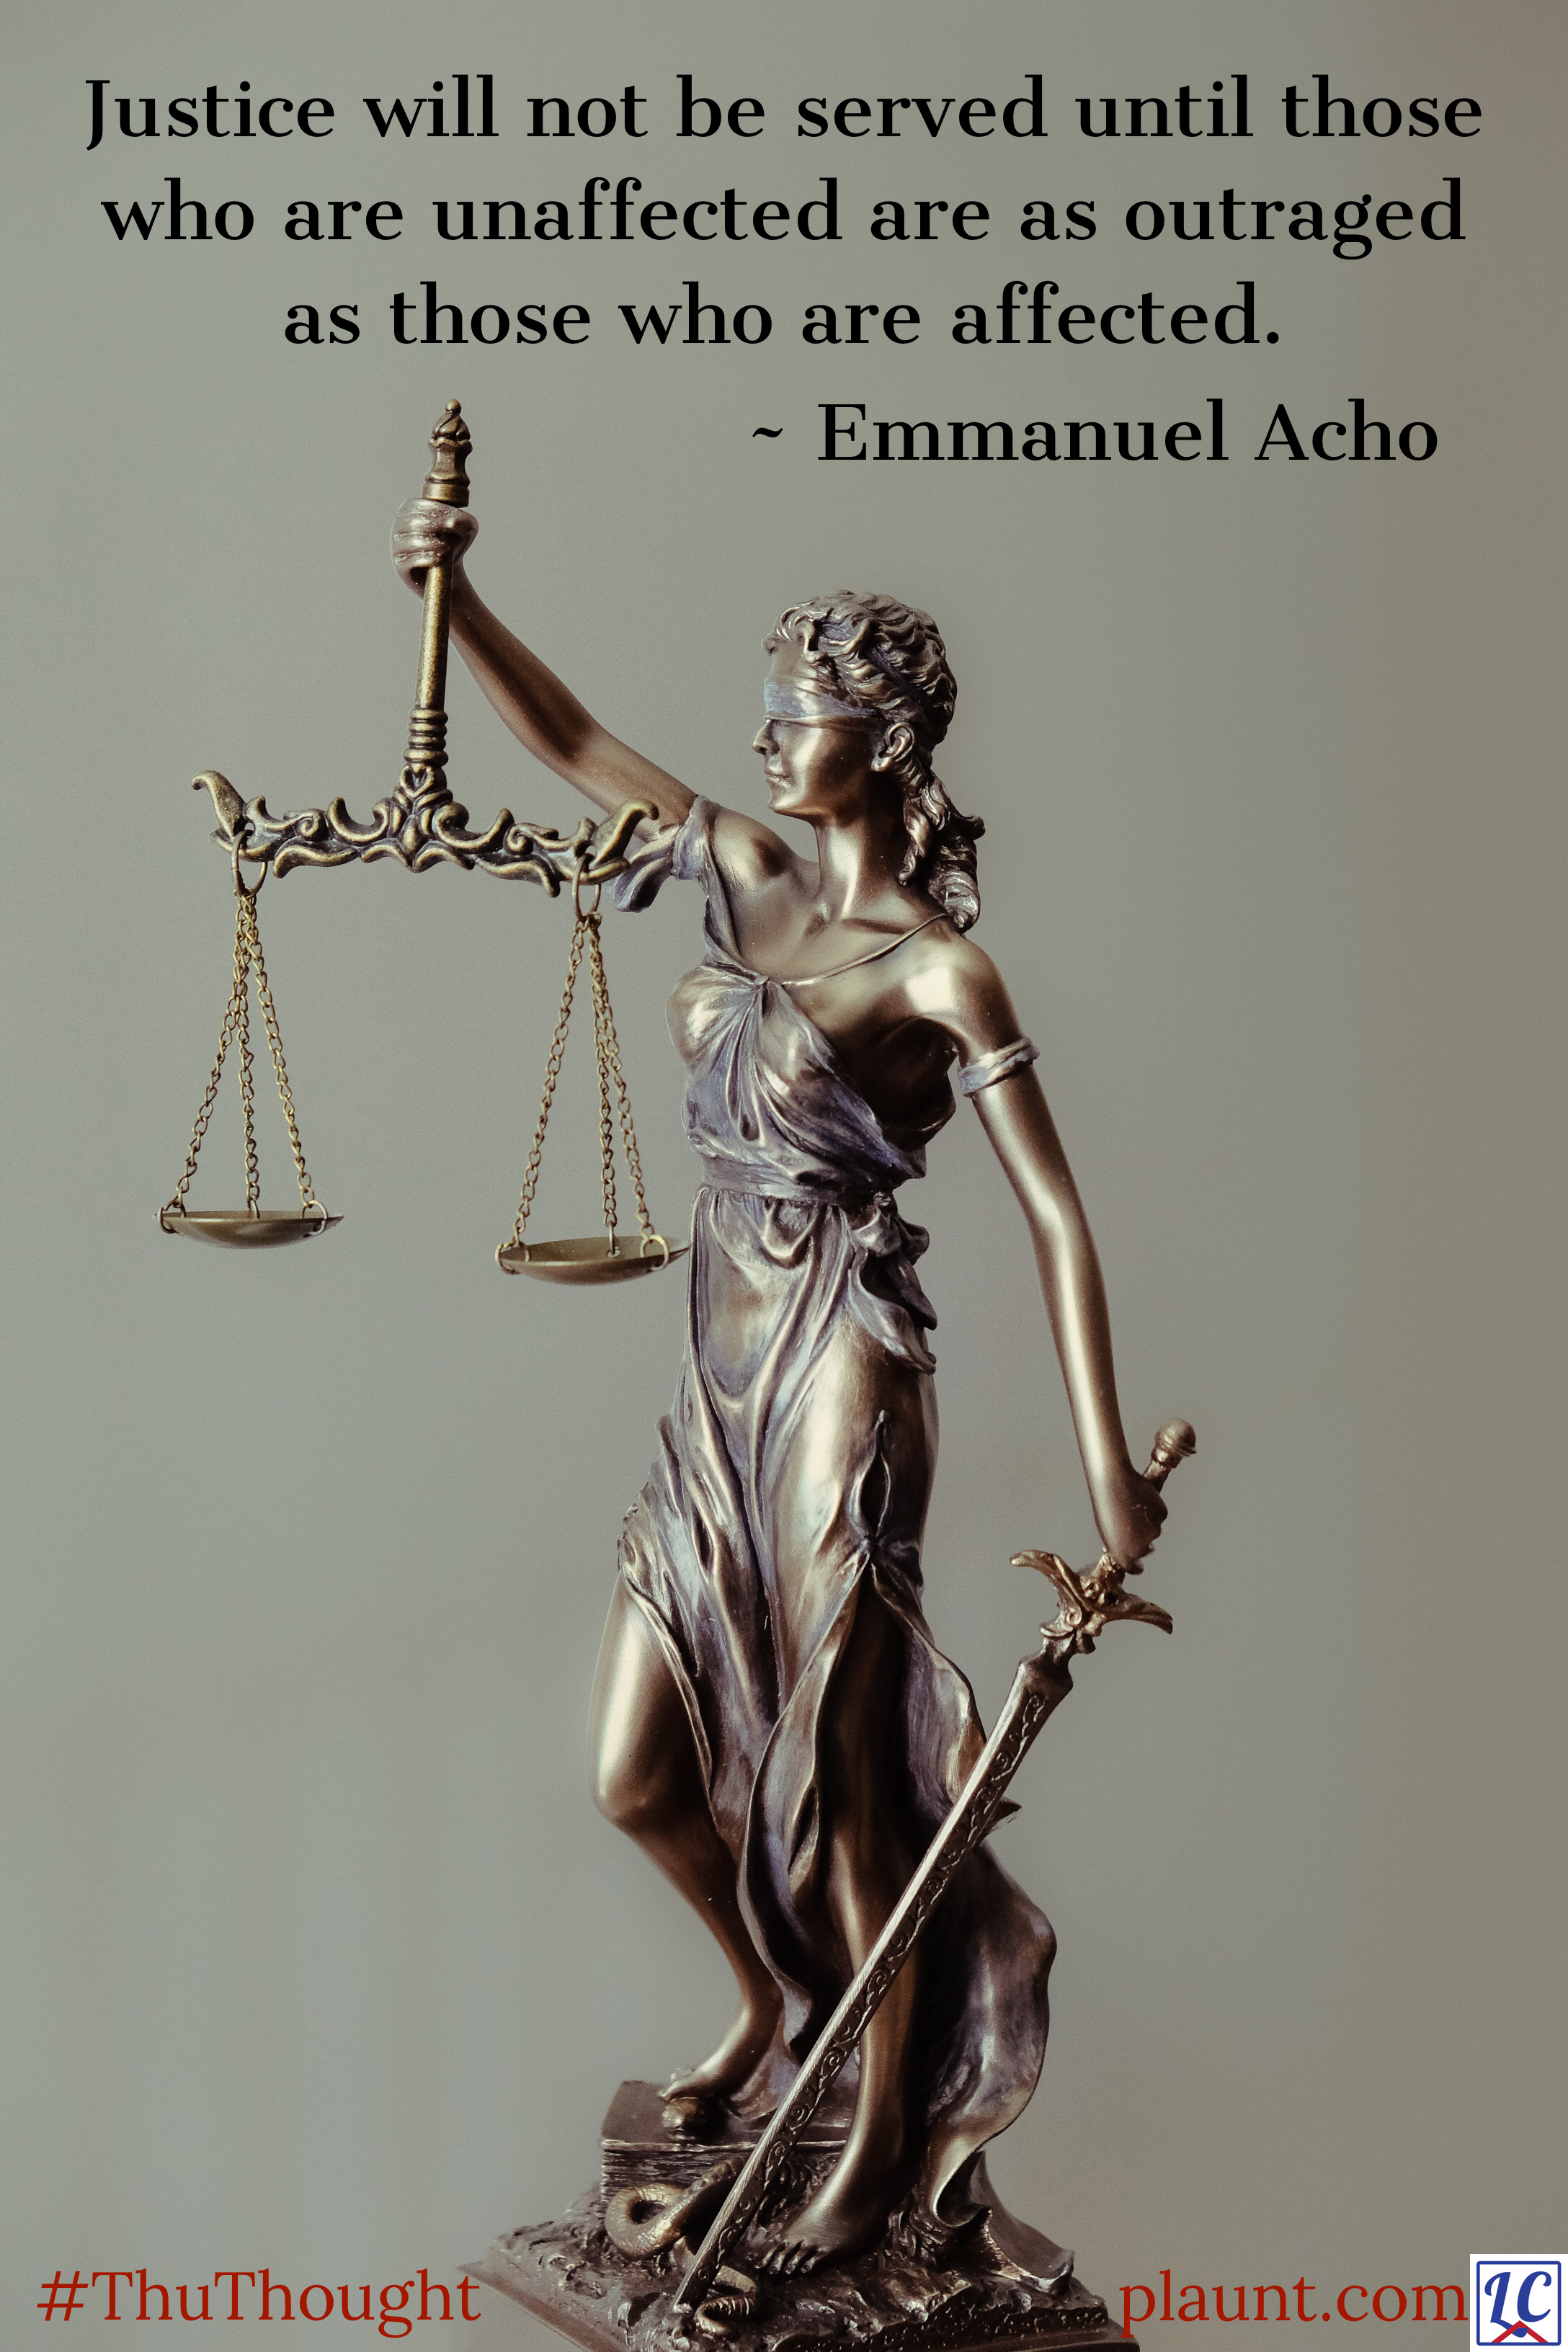 A statue of Lady Justice--a woman holding scales and a sword. Caption: Justice will not be served until those who are unaffected are as outraged as those who are affected. ~Emmanuel Acho